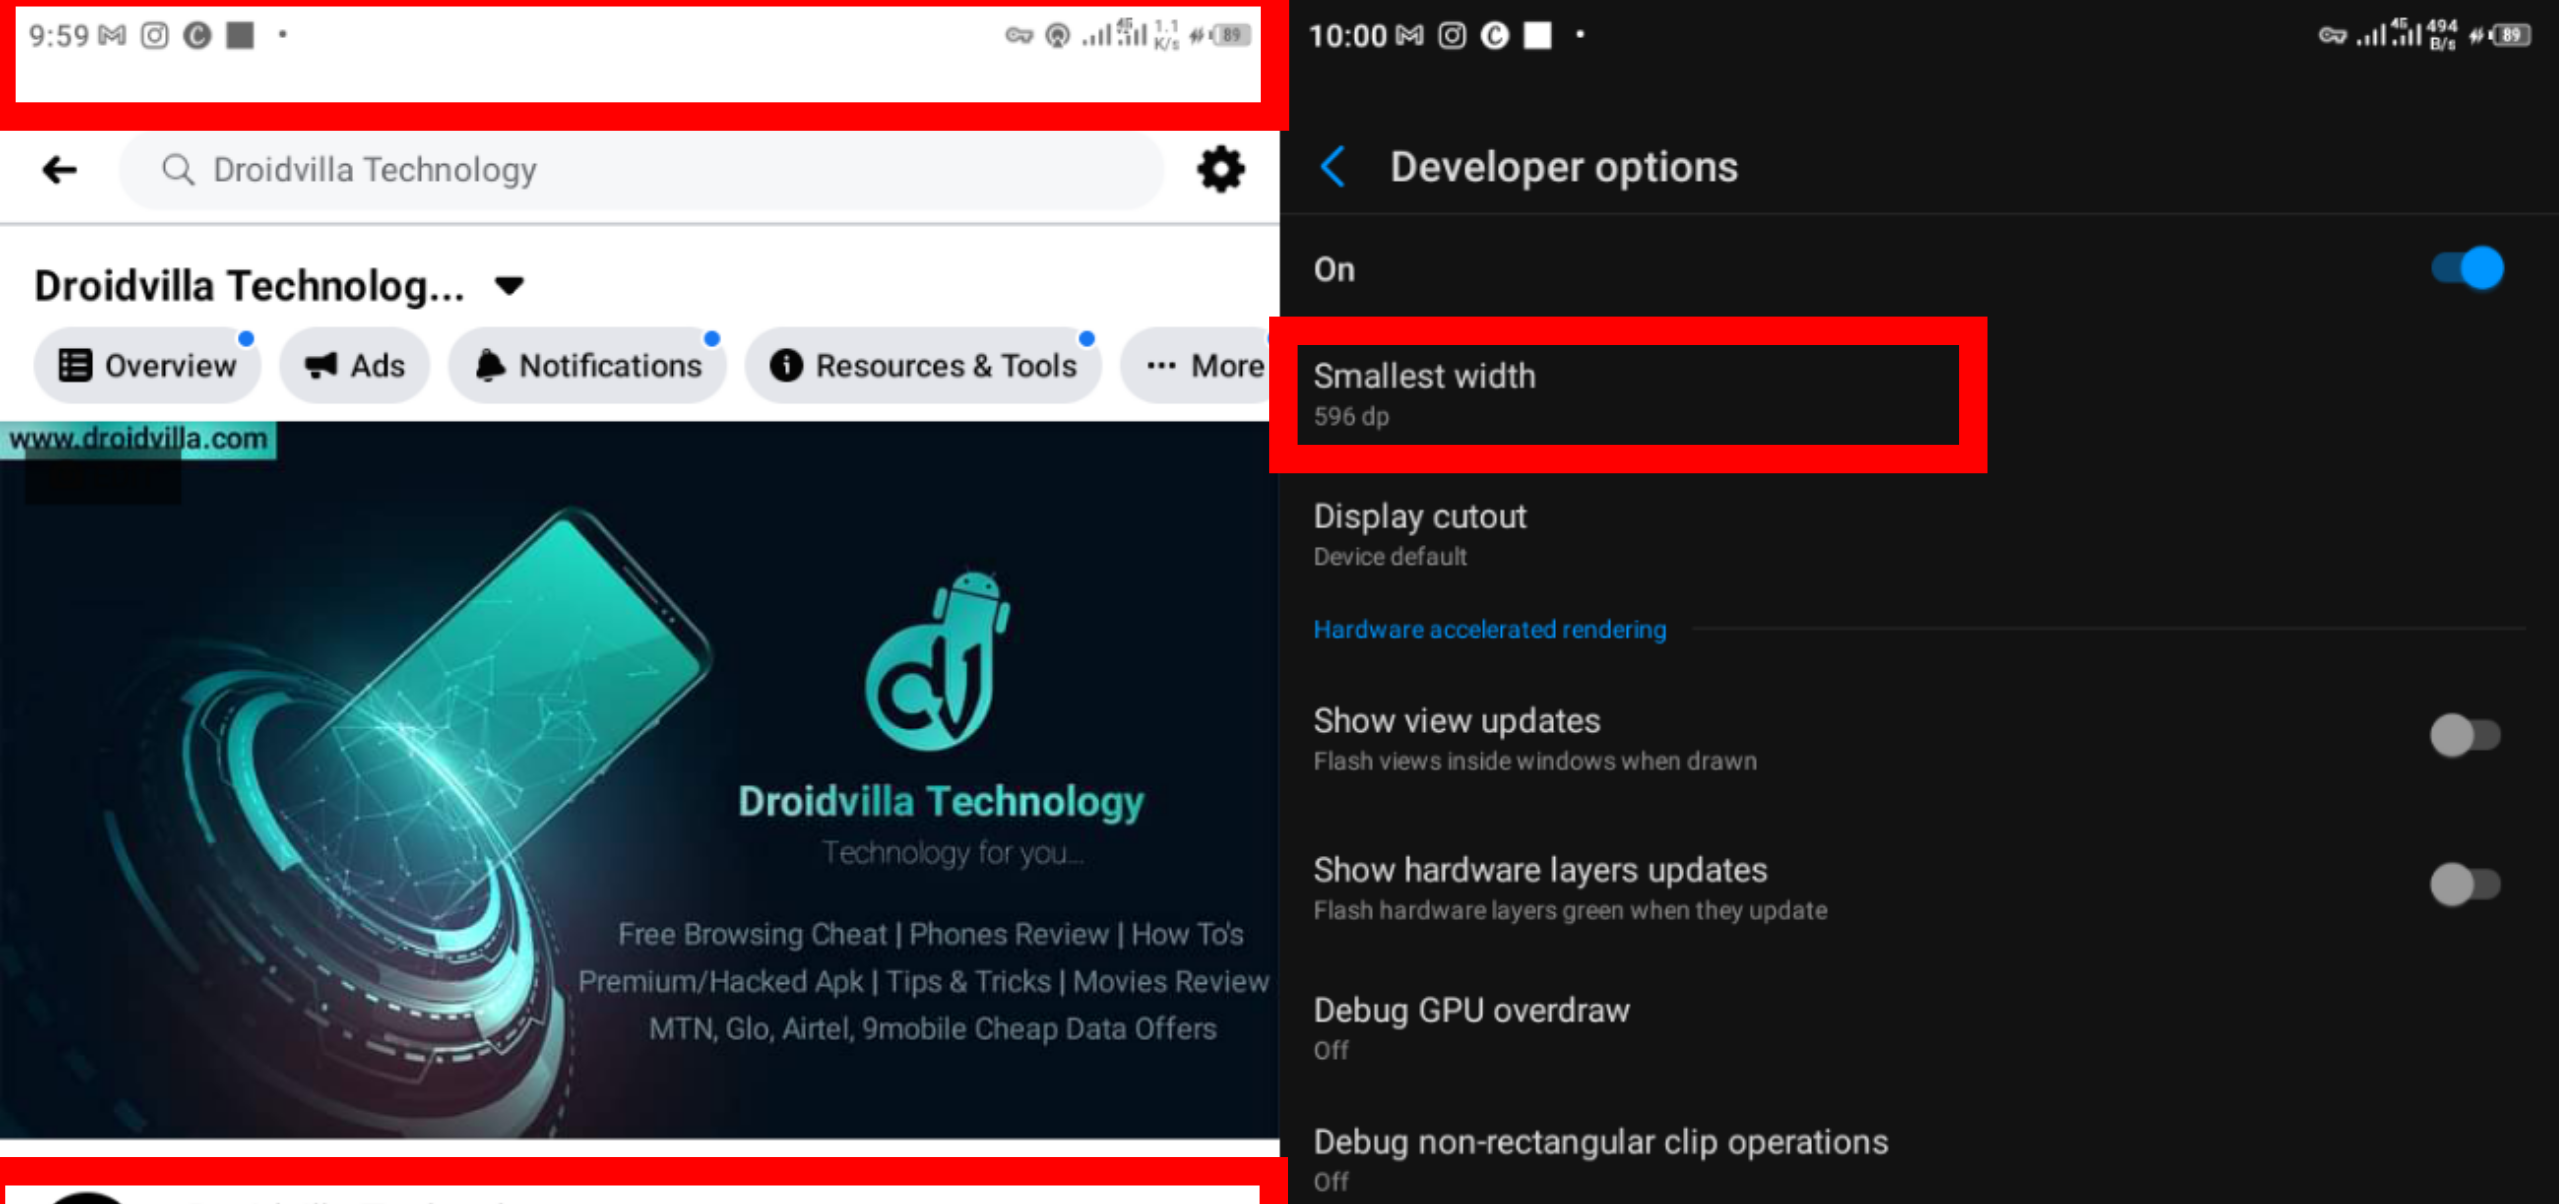 How to Reduce/Increase Android Screen display DPI size - Android Developer Option Tips and Tricks